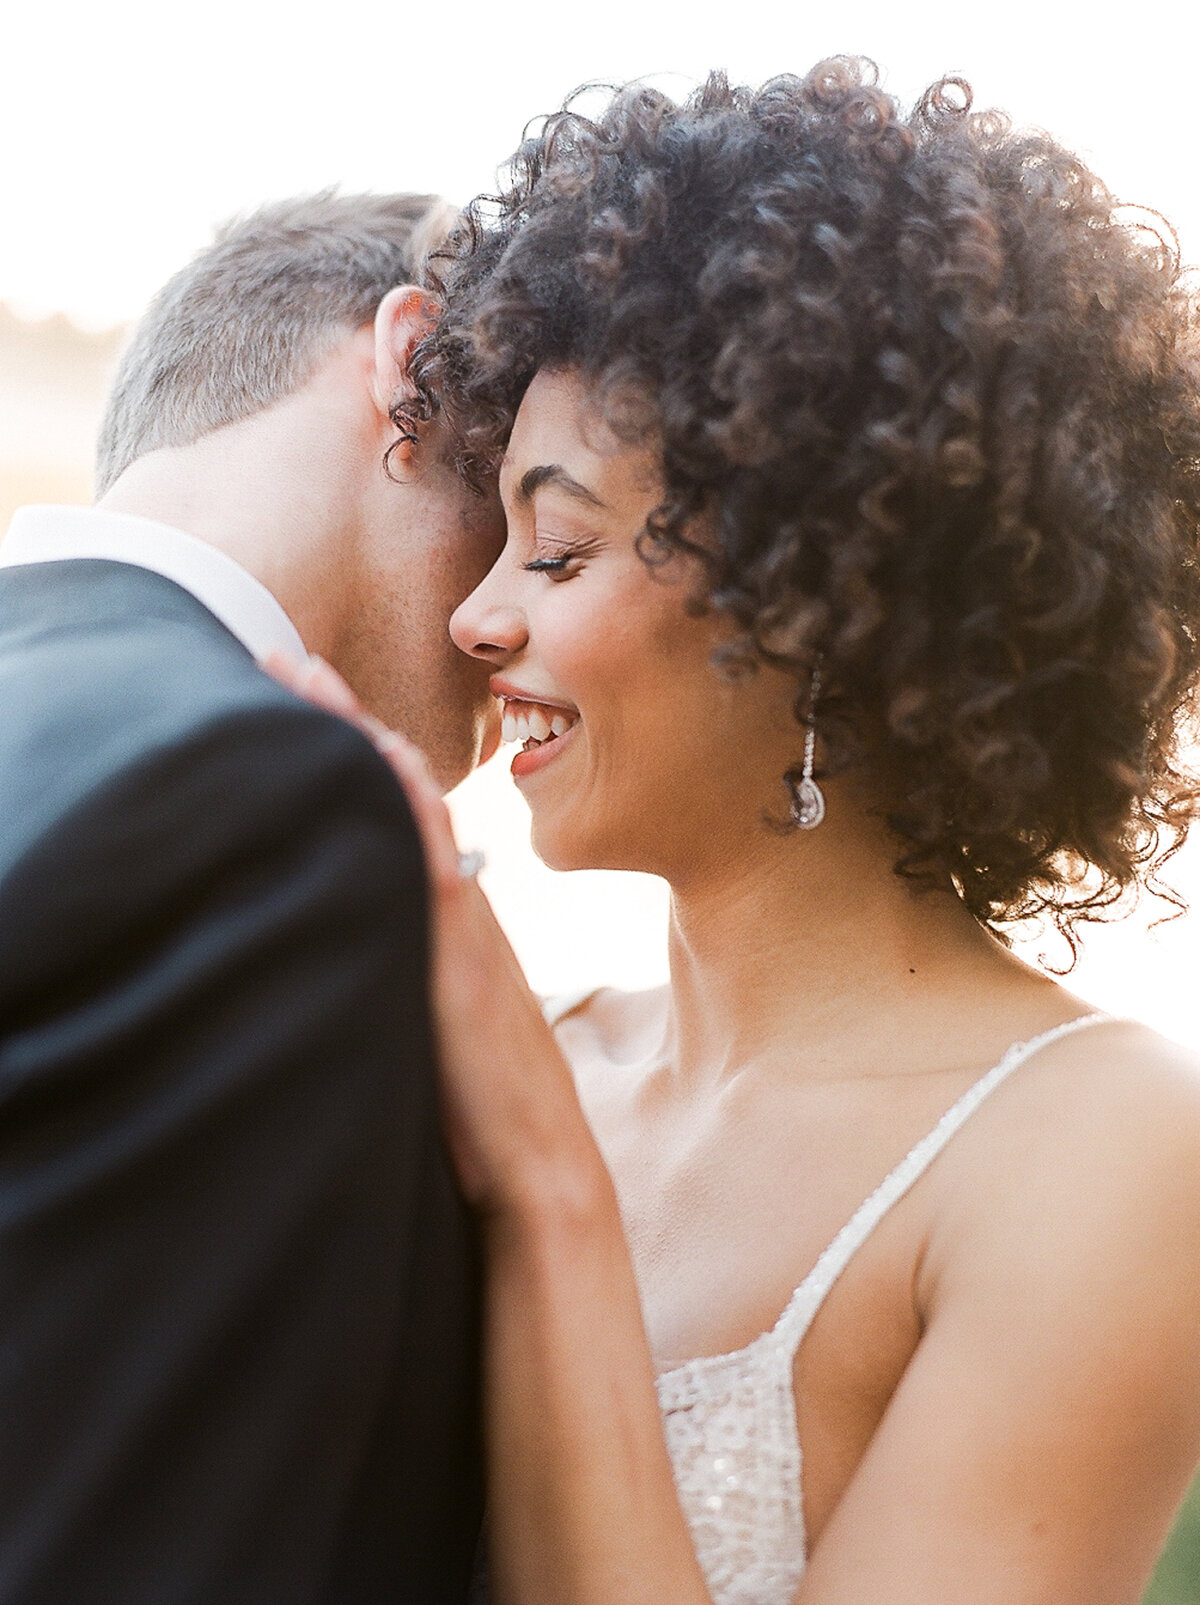 Bride and groom embracing and laughing at destination wedding